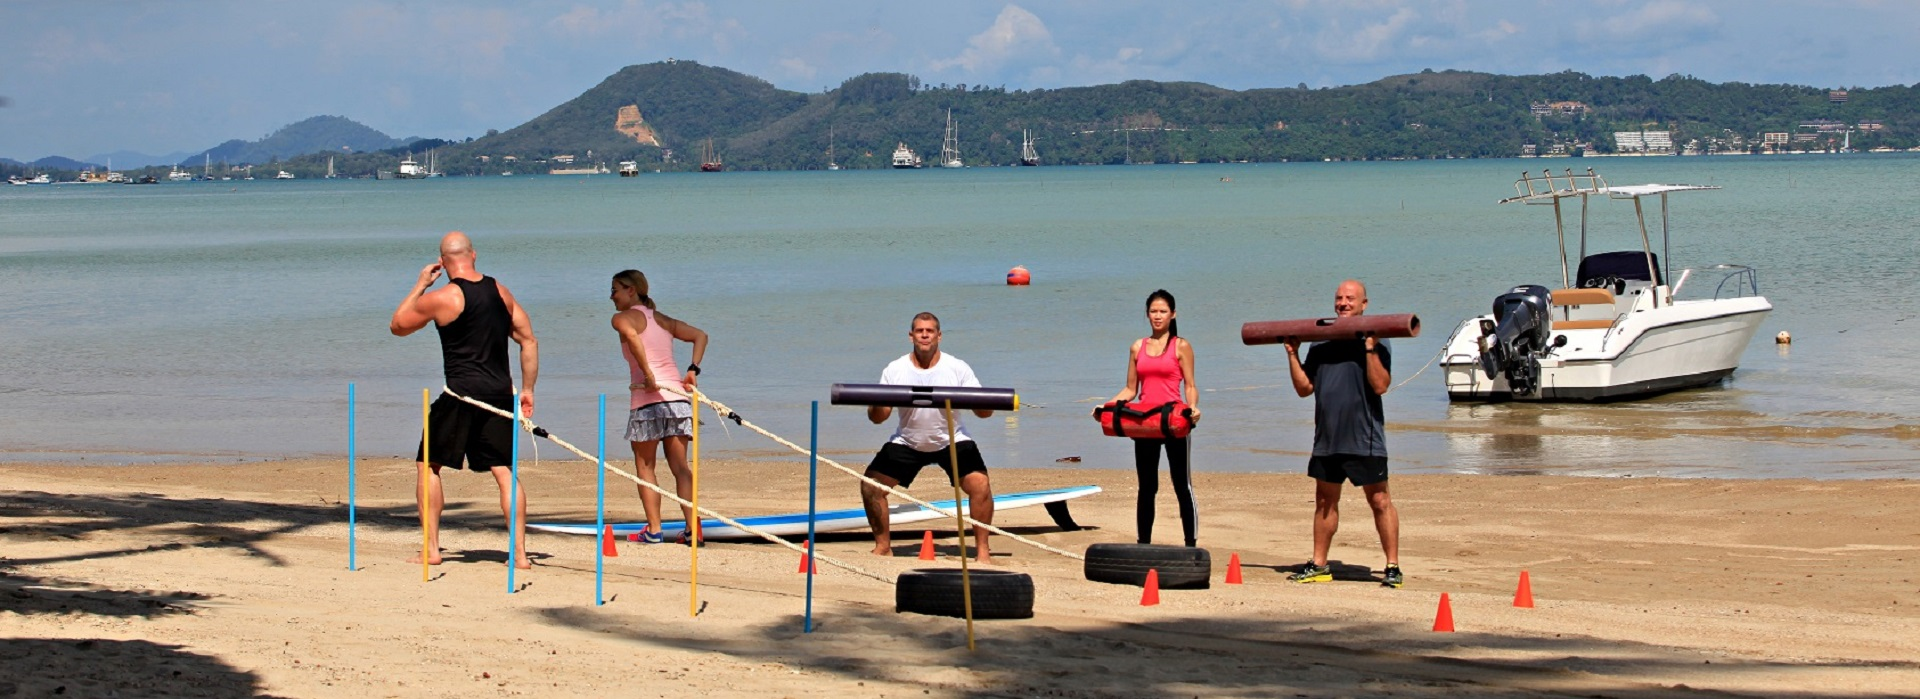 Atmanjai Yoga retreats in Rawai Phuket